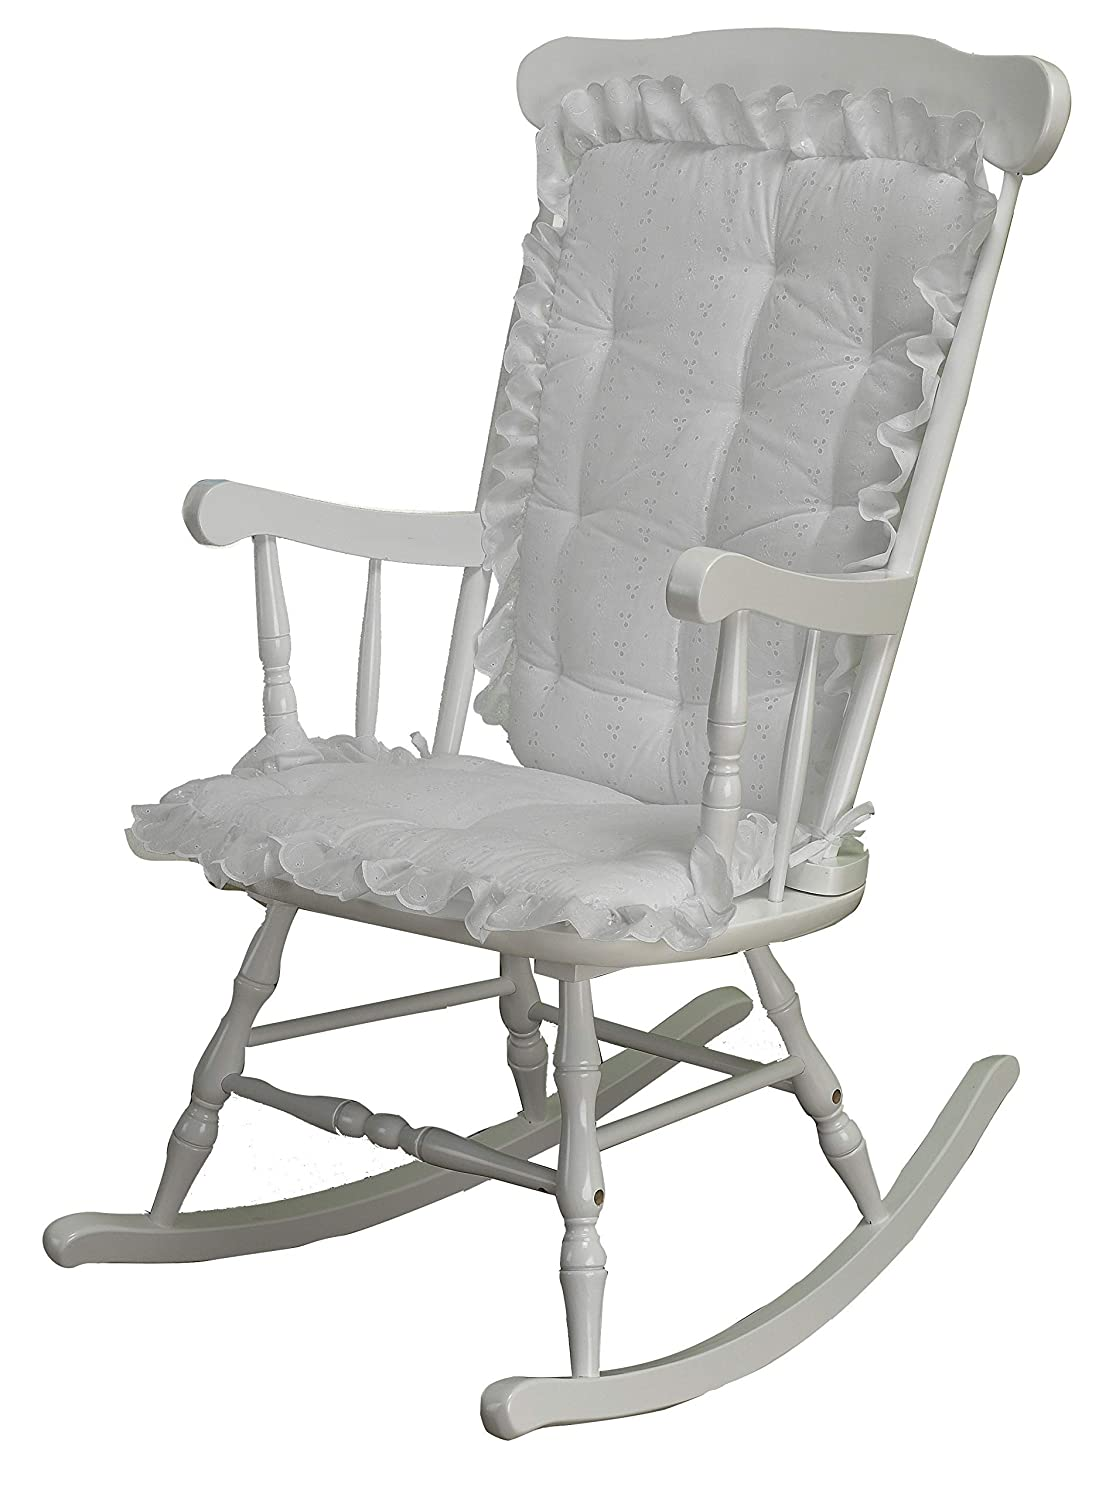 White Eyelet Machine Washable Seat and Seat Back Cushions Seat Cover or Replacement Pads for Rocker or Glider ABABY.COM Rocking Chair Cushion Pad Set